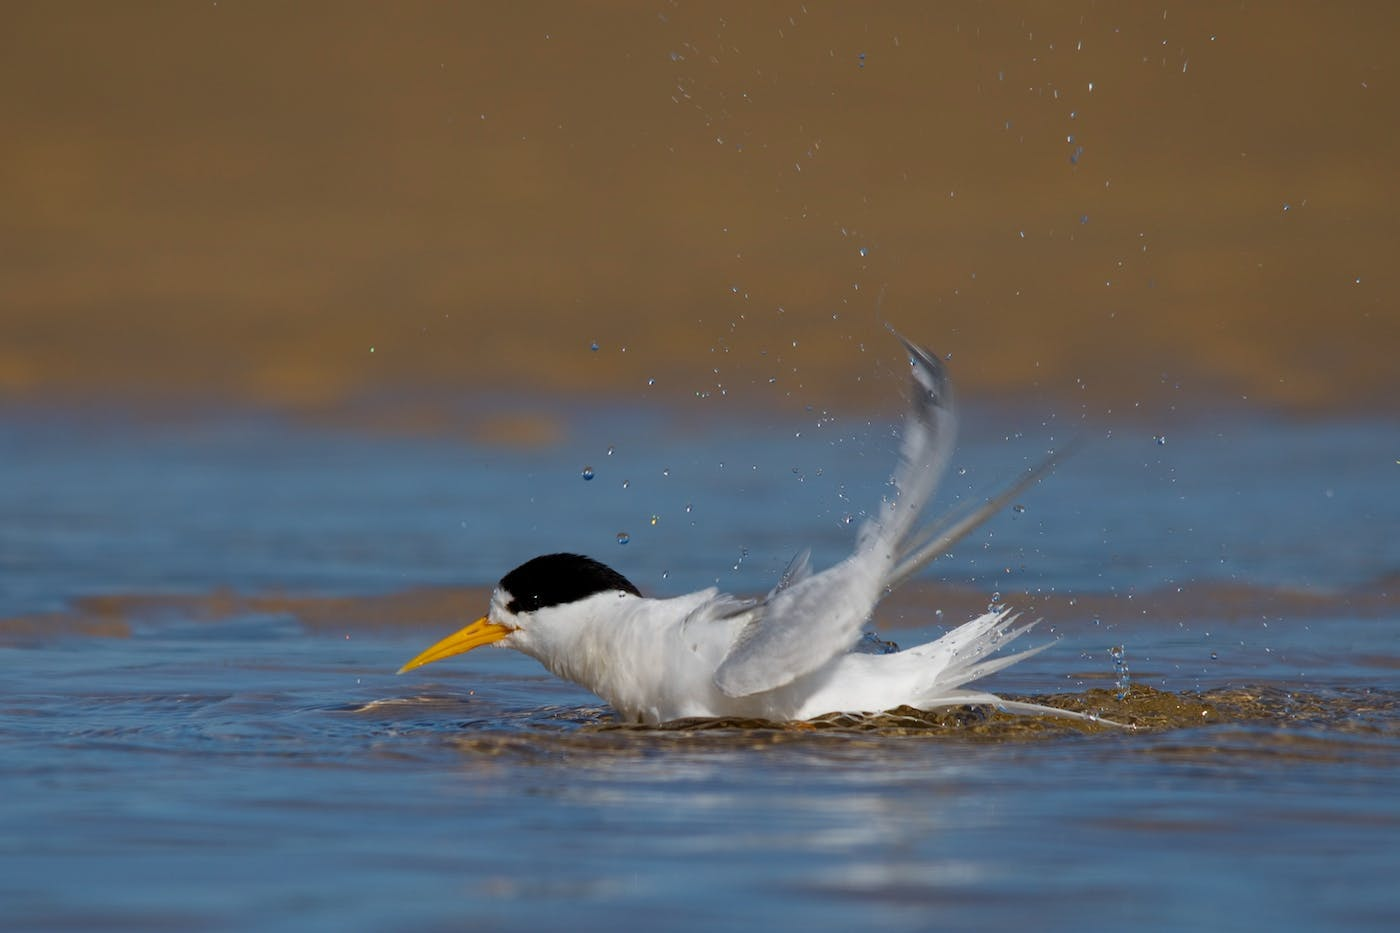 Fairy tern bathing in Tuross Lake. Fairy terns look very similar to little terns but have orange-yellow bills - little terns' bills are more yellow, and are black-tipped. Photo: J Cornish.